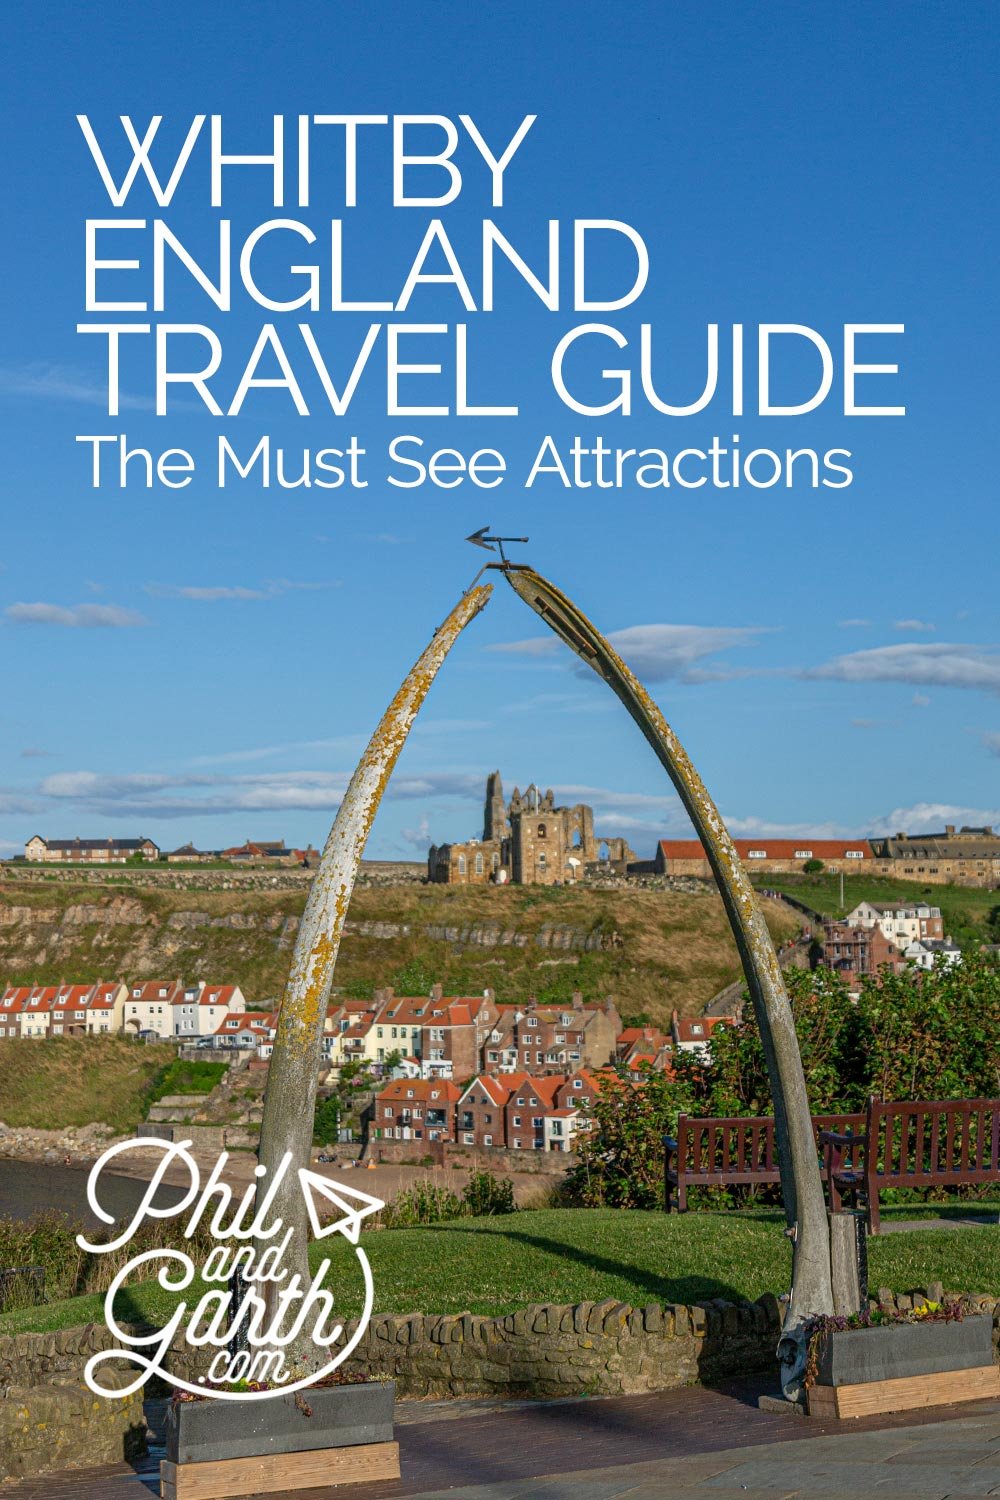 The must see attractions of Whitby